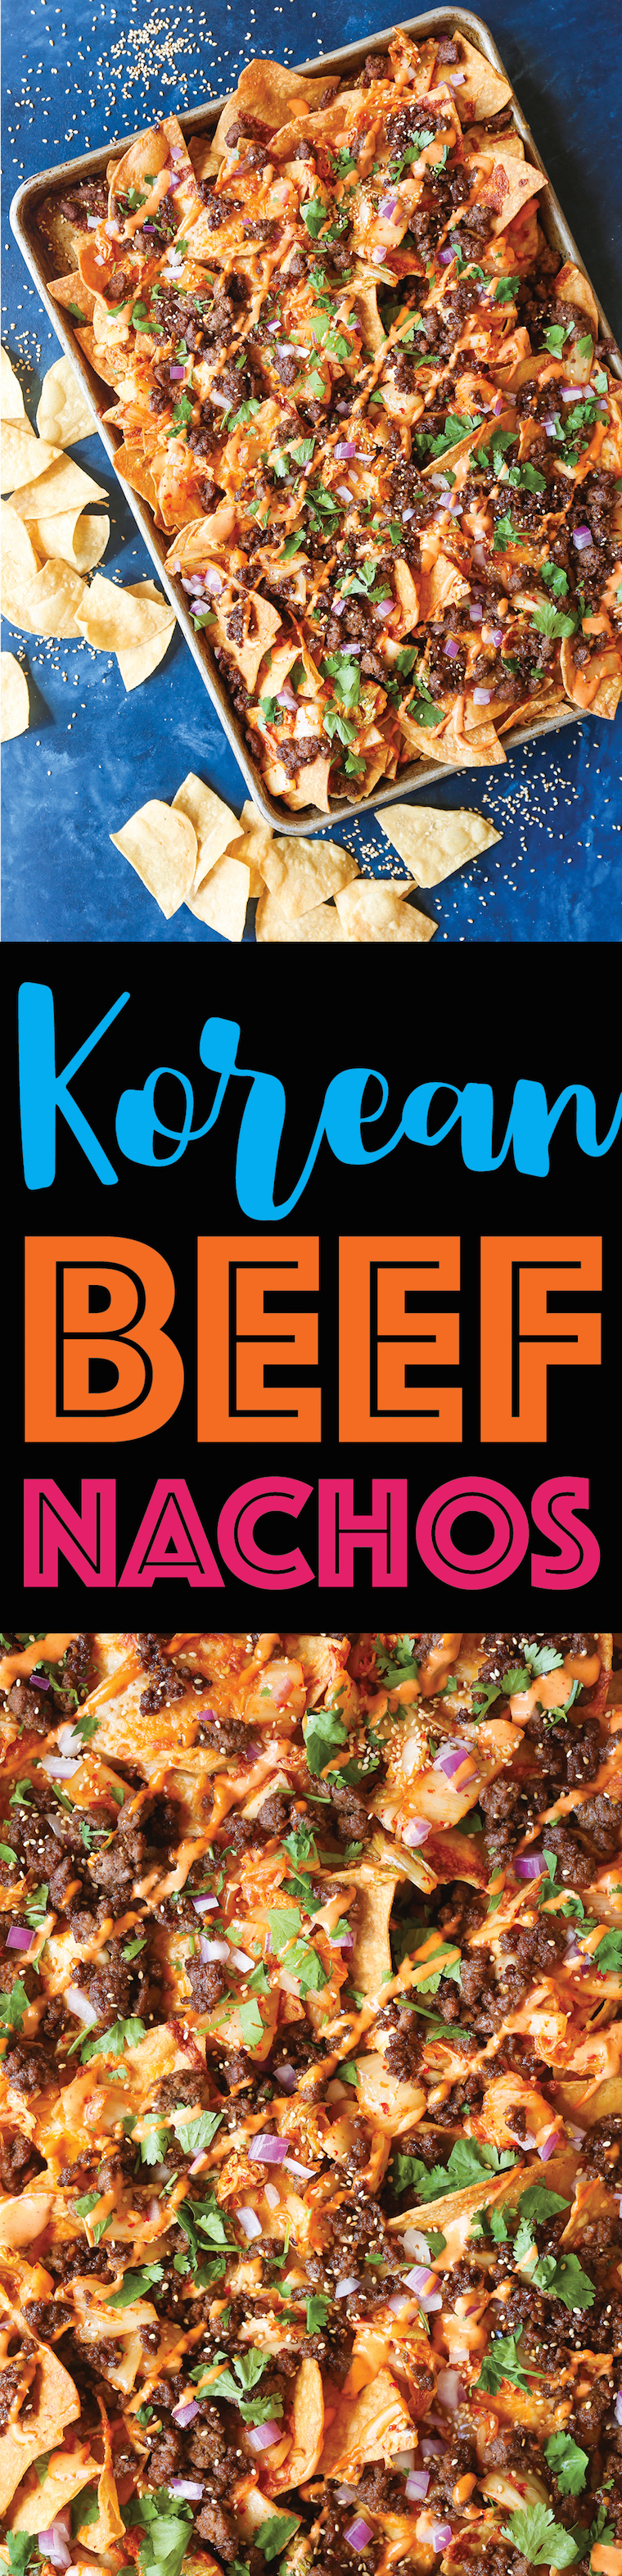 Korean Beef Nachos - These will be the BEST NACHOS of your life! Topped with everyone's favorite Korean beef, caramelized kimchi + a Sriracha mayo drizzle!